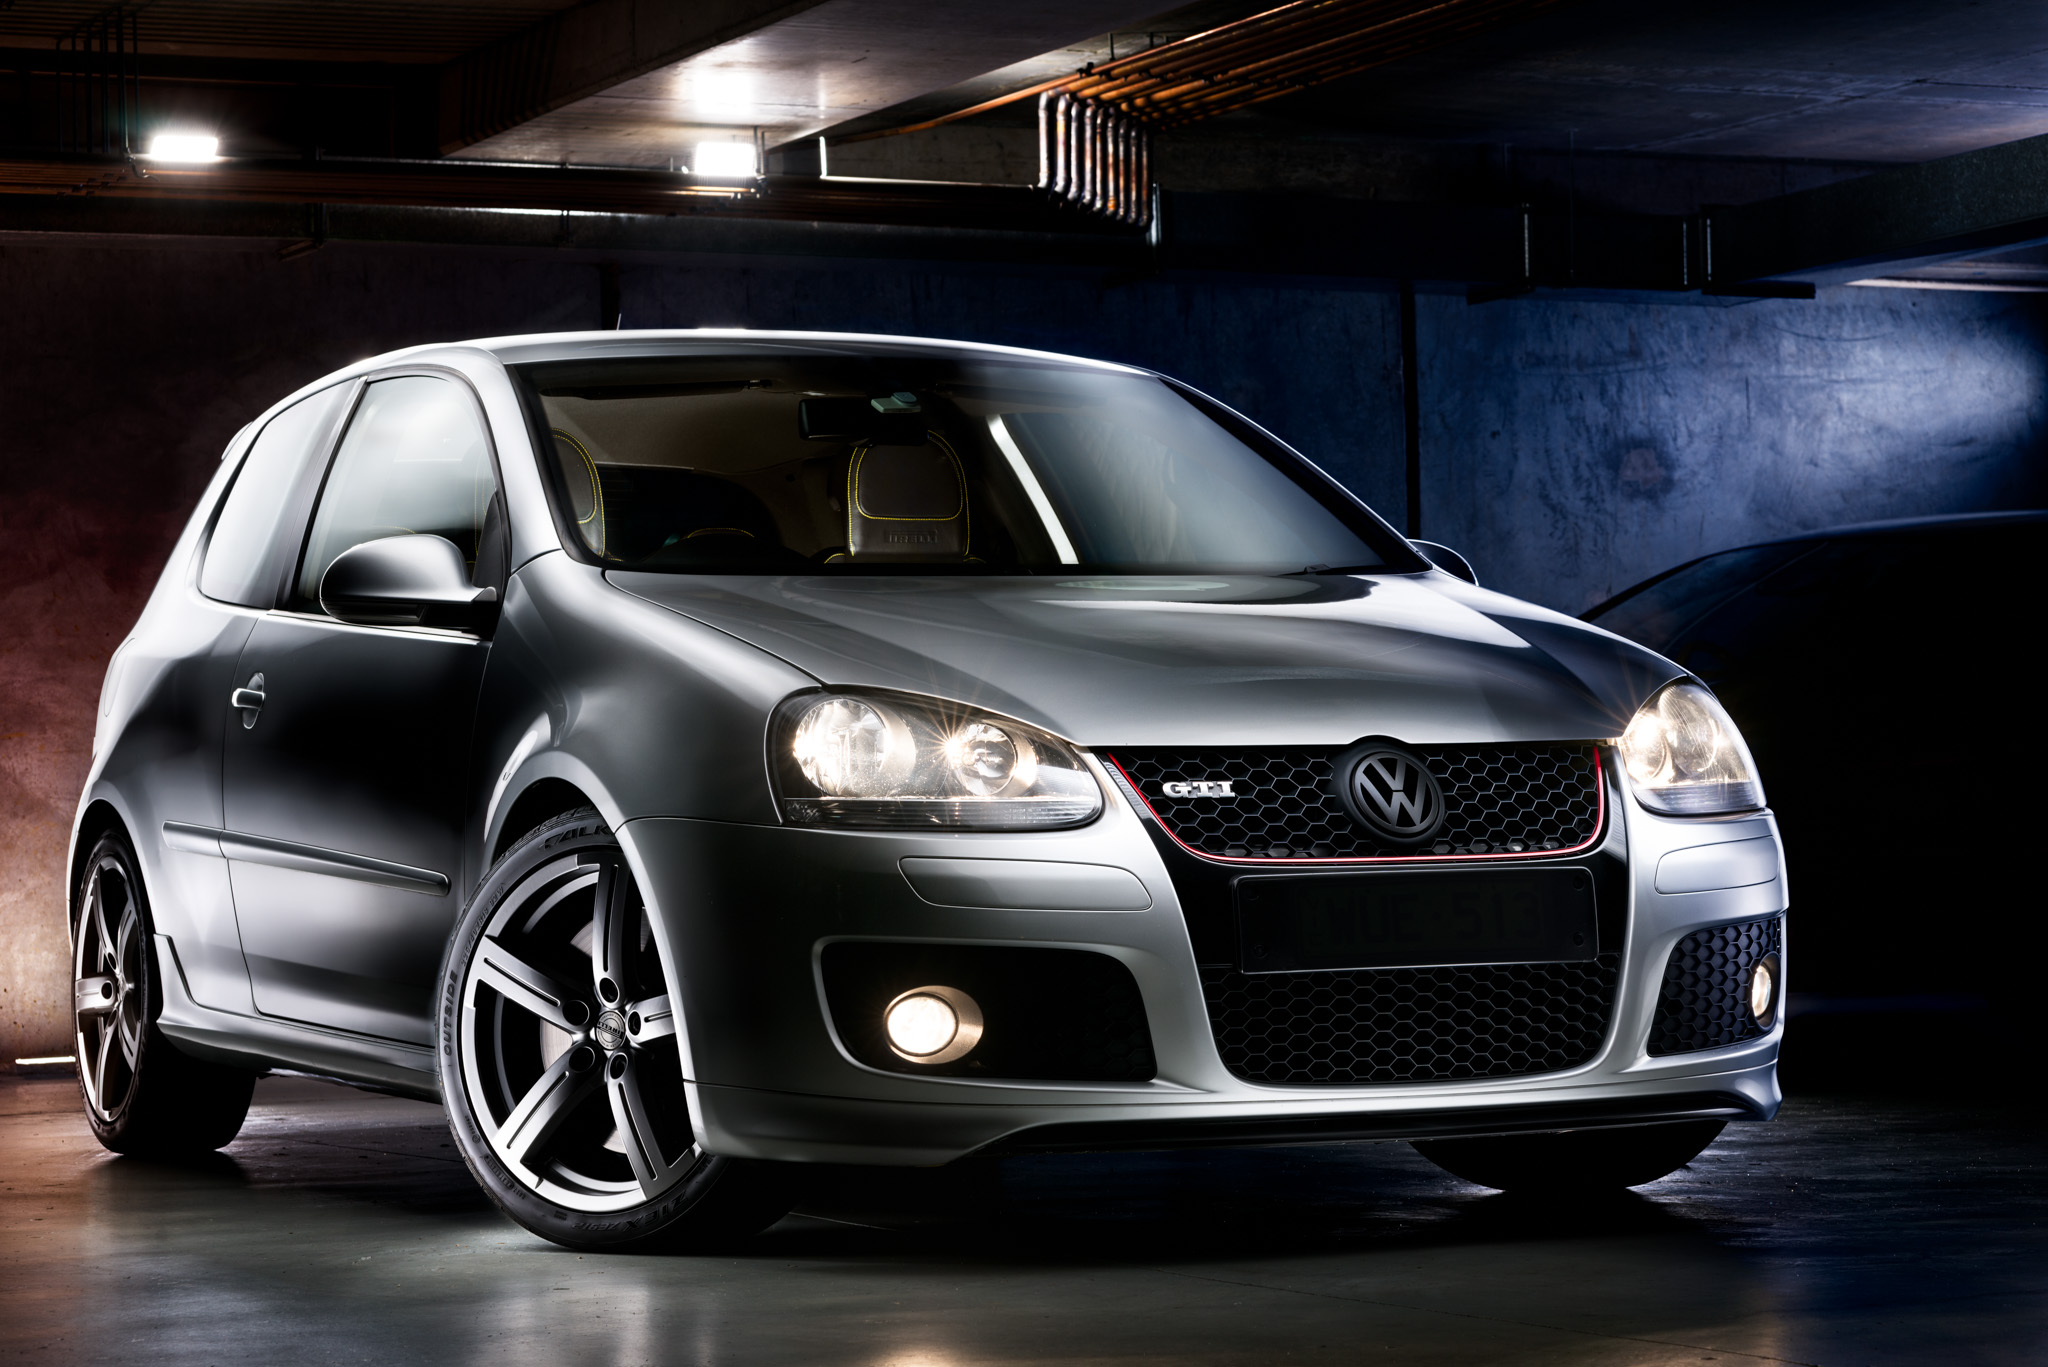 Light Painting - Volkswagen Golf GTI Mk5 silver Pirelli Edition